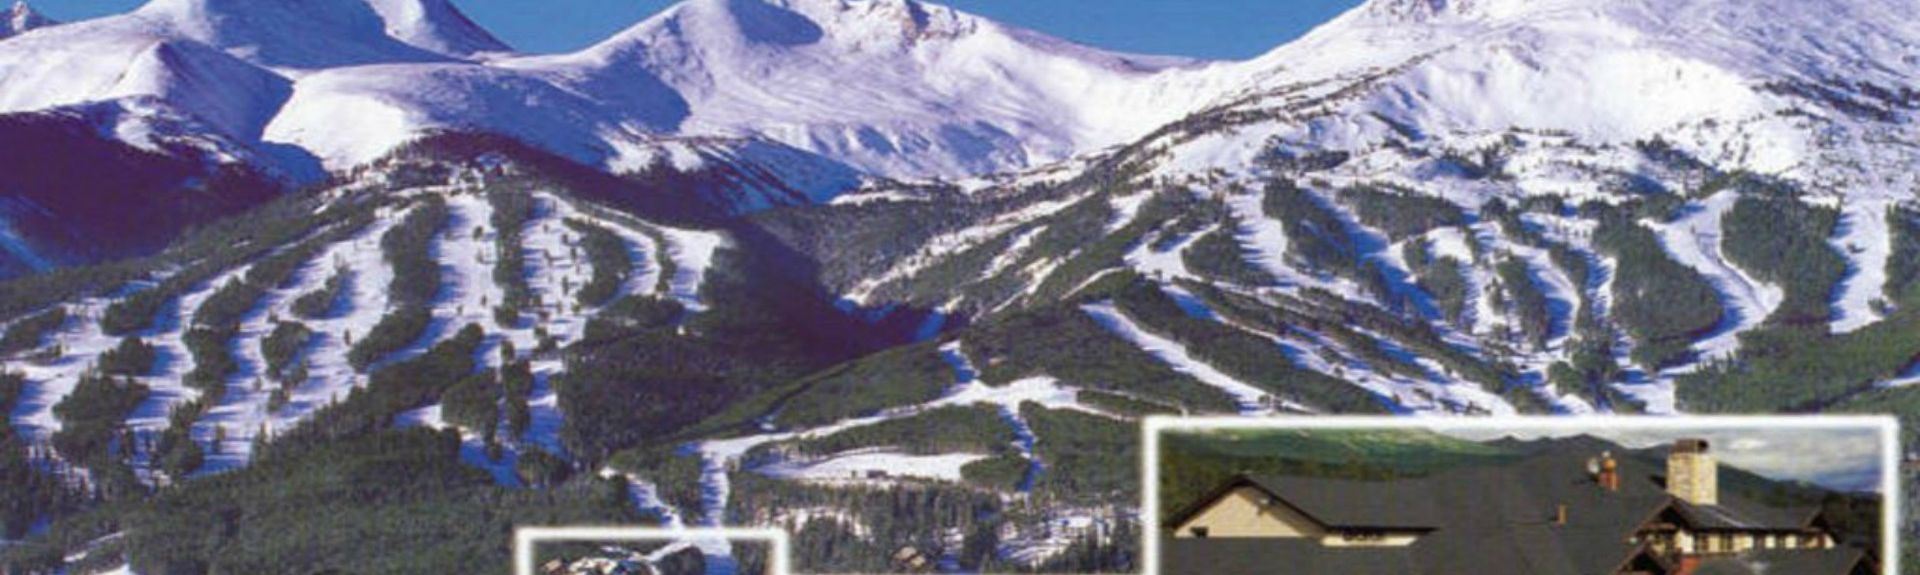 Grand Timber Lodge (Breckenridge, Colorado, United States)